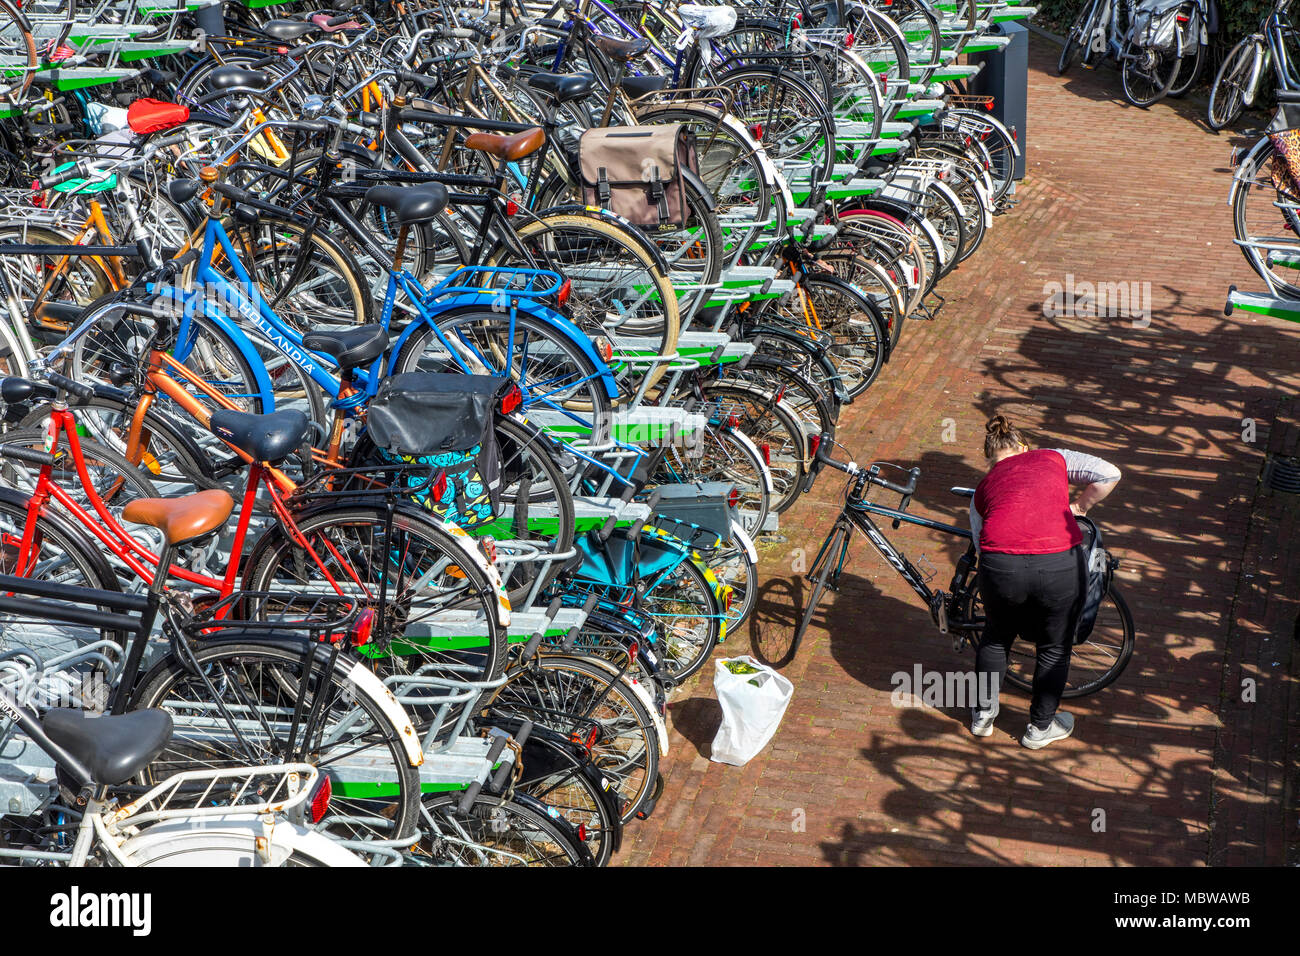 Bicycle parking, parking, in the city center of Rotterdam, at the train and bus stop Blaak, secure parking spaces, on shelf parking spaces, - Stock Image